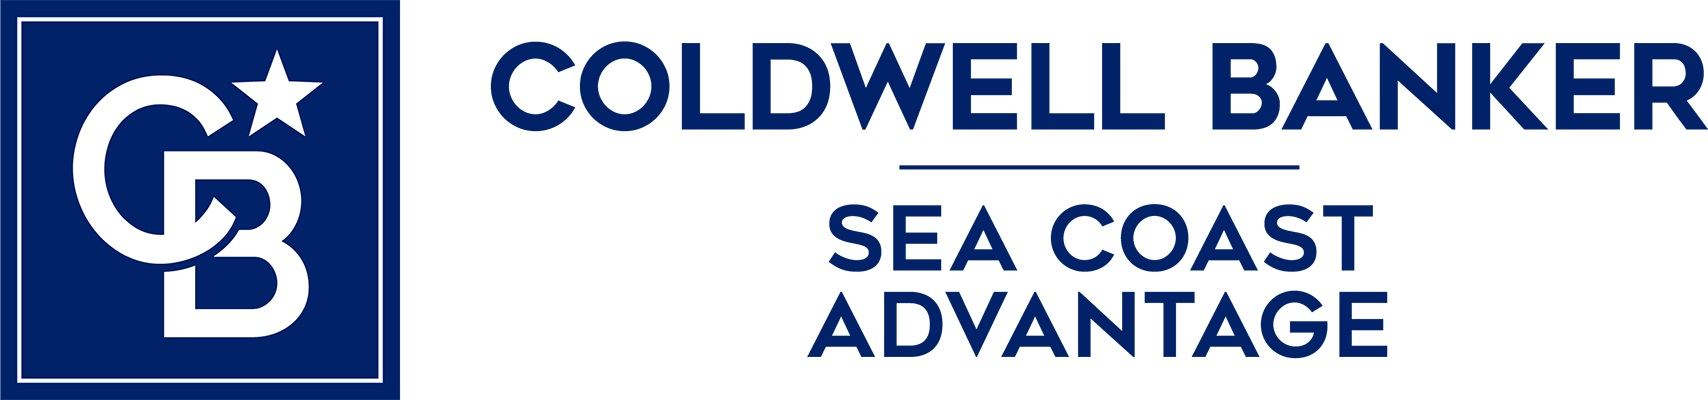 Jim Justice - Coldwell Banker Sea Coast Advantage Realty